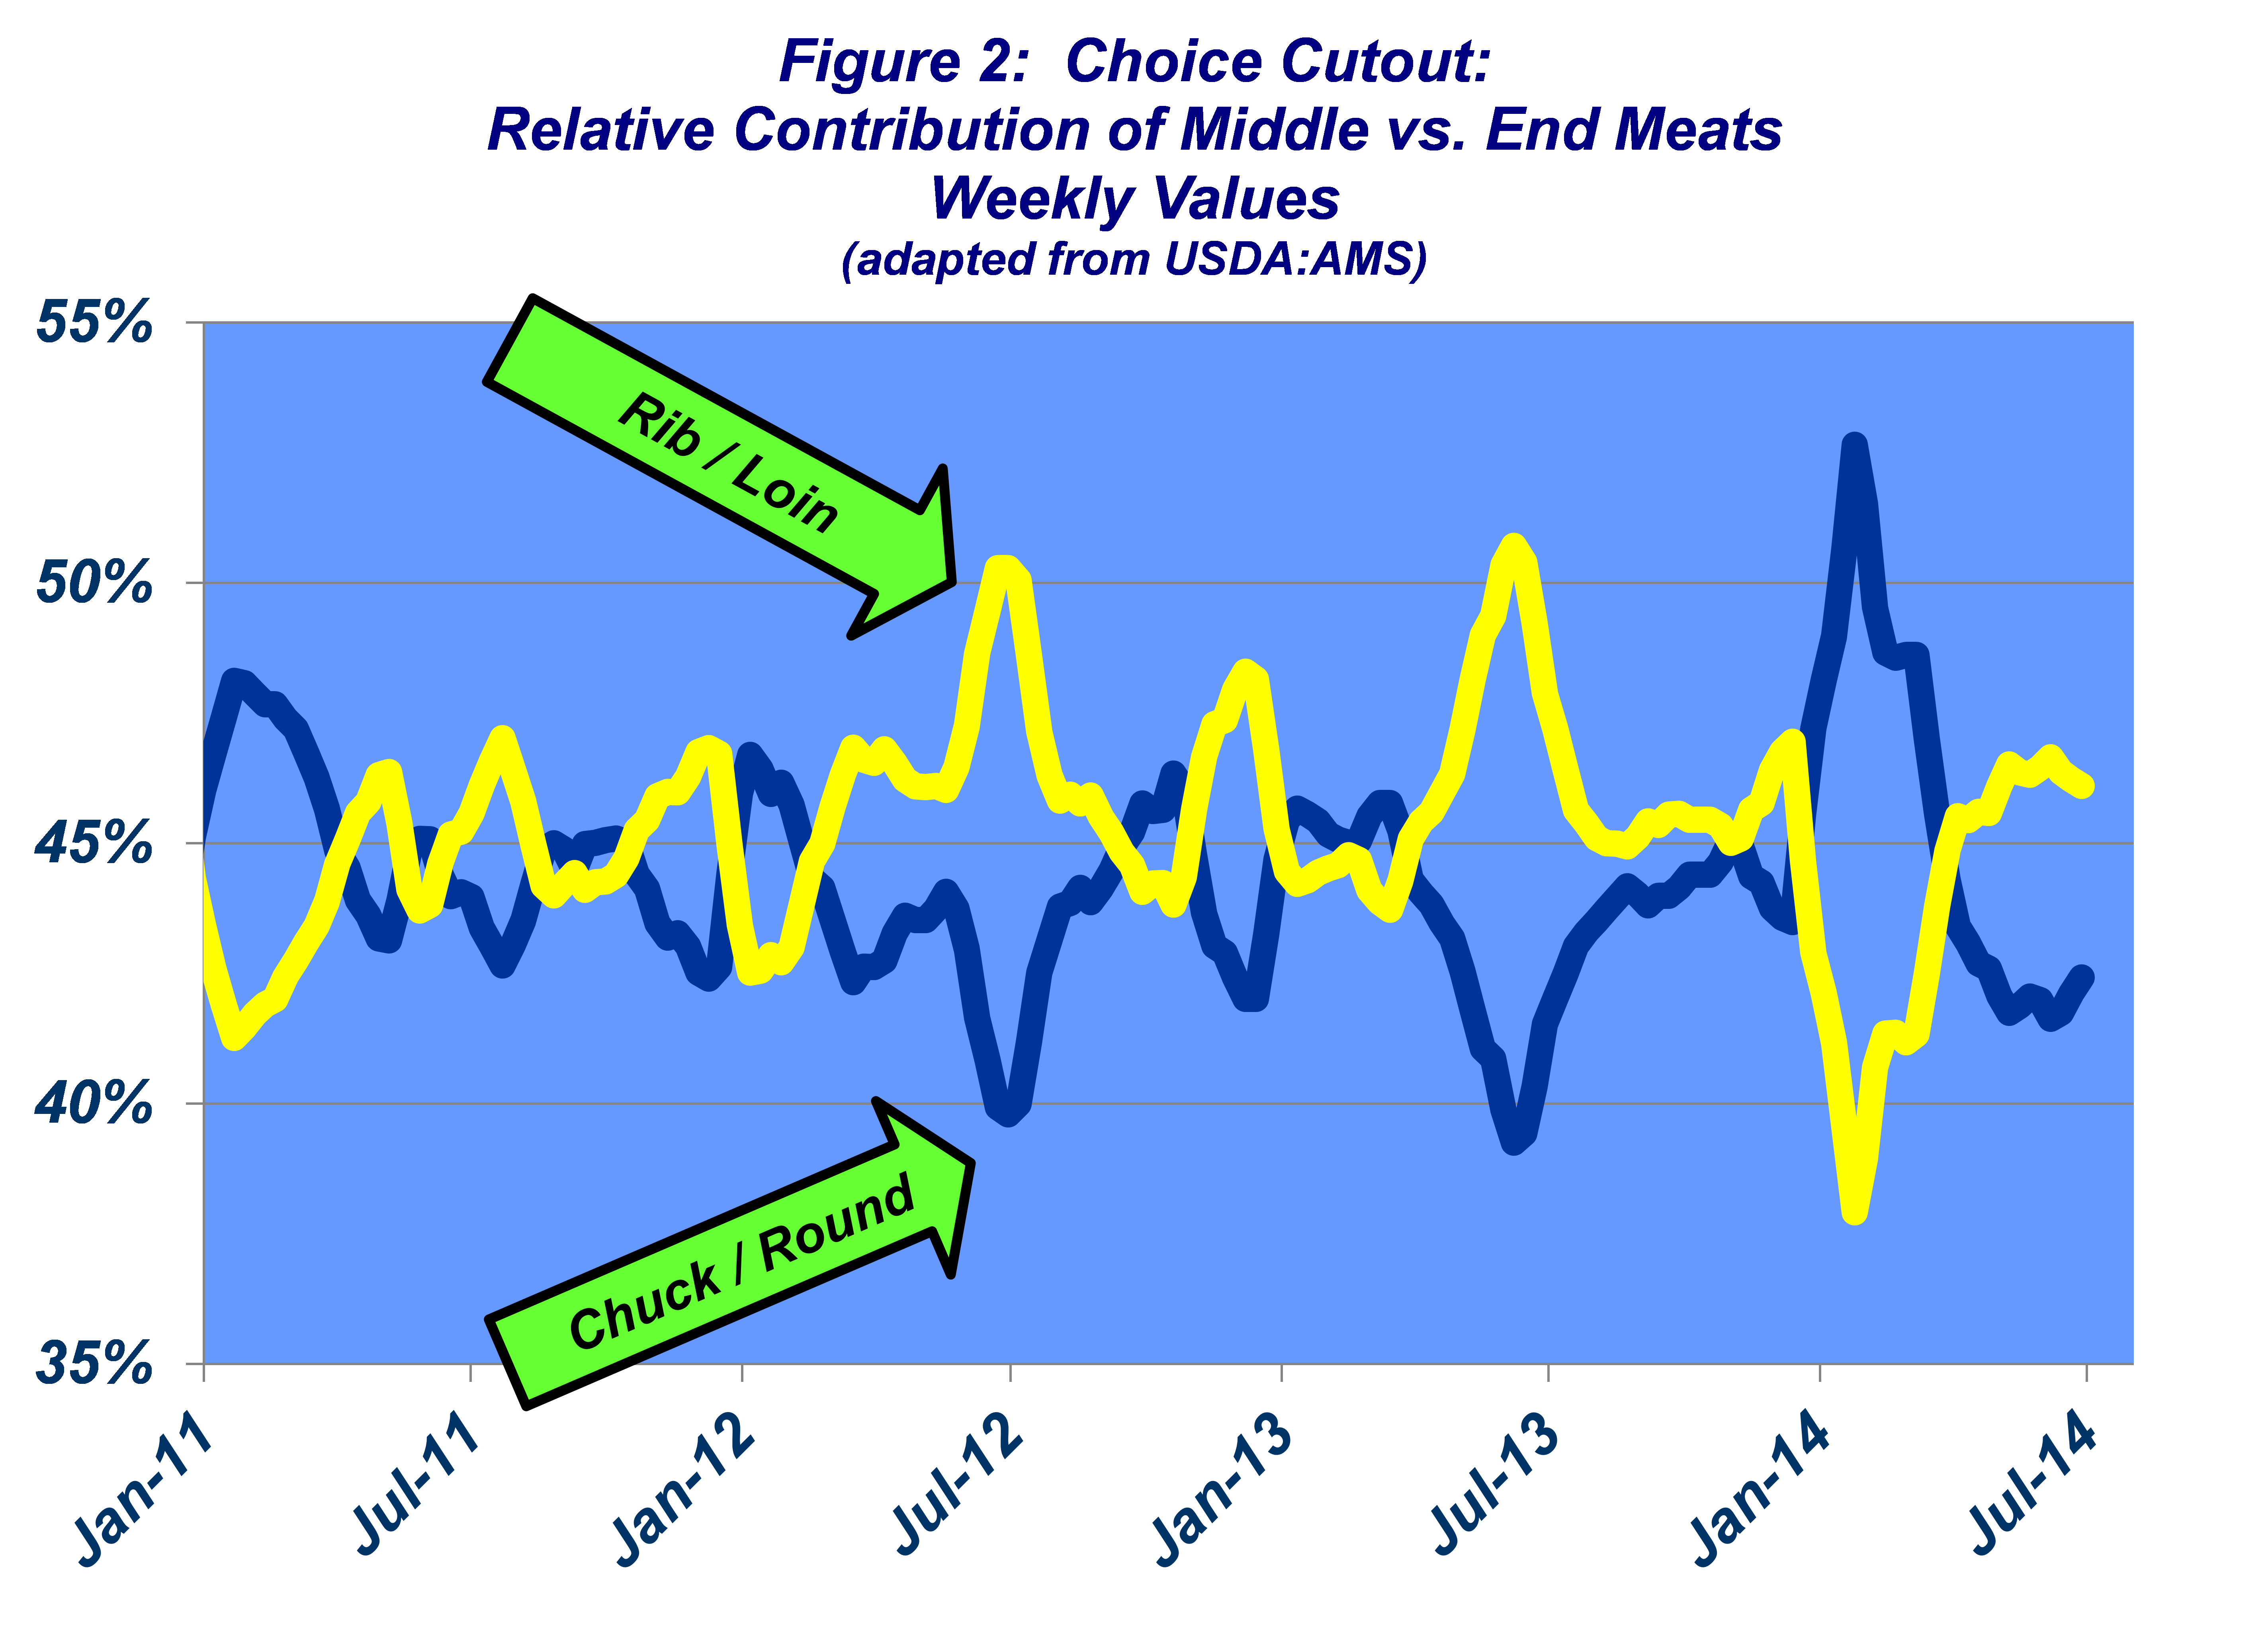 Choice Cutout: Relative Contribution of Middle Vs. End Meats